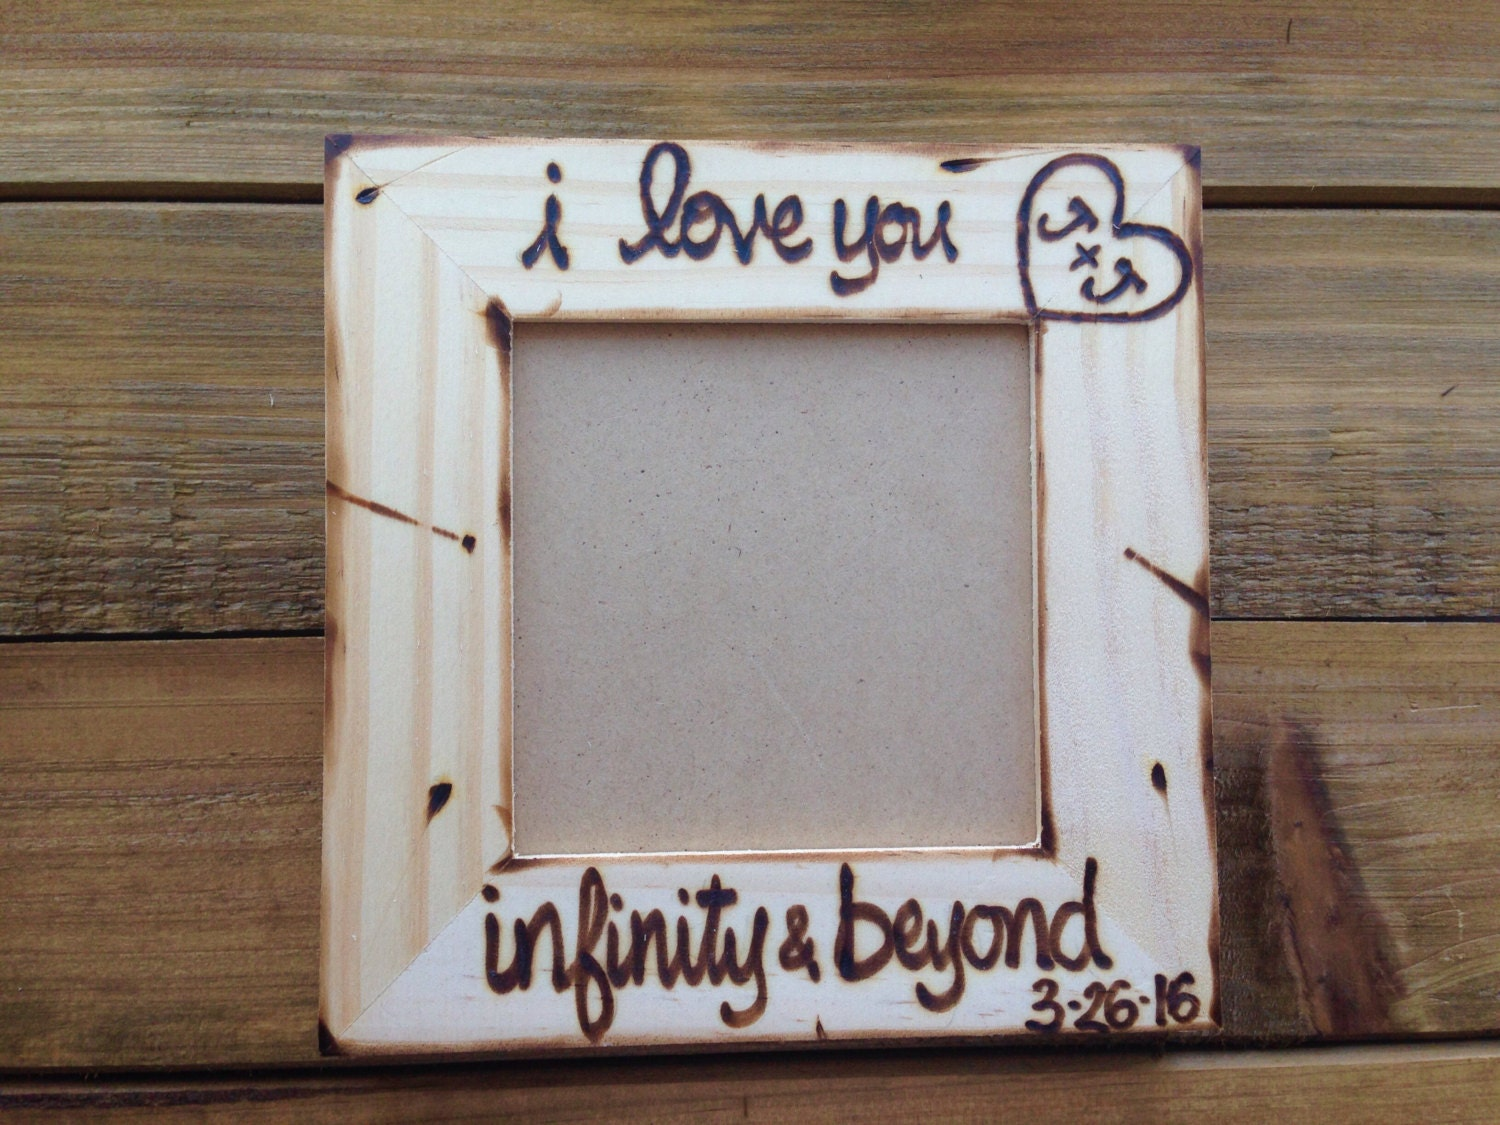 Valentines day infinity beyond frame wedding engagement zoom jeuxipadfo Image collections